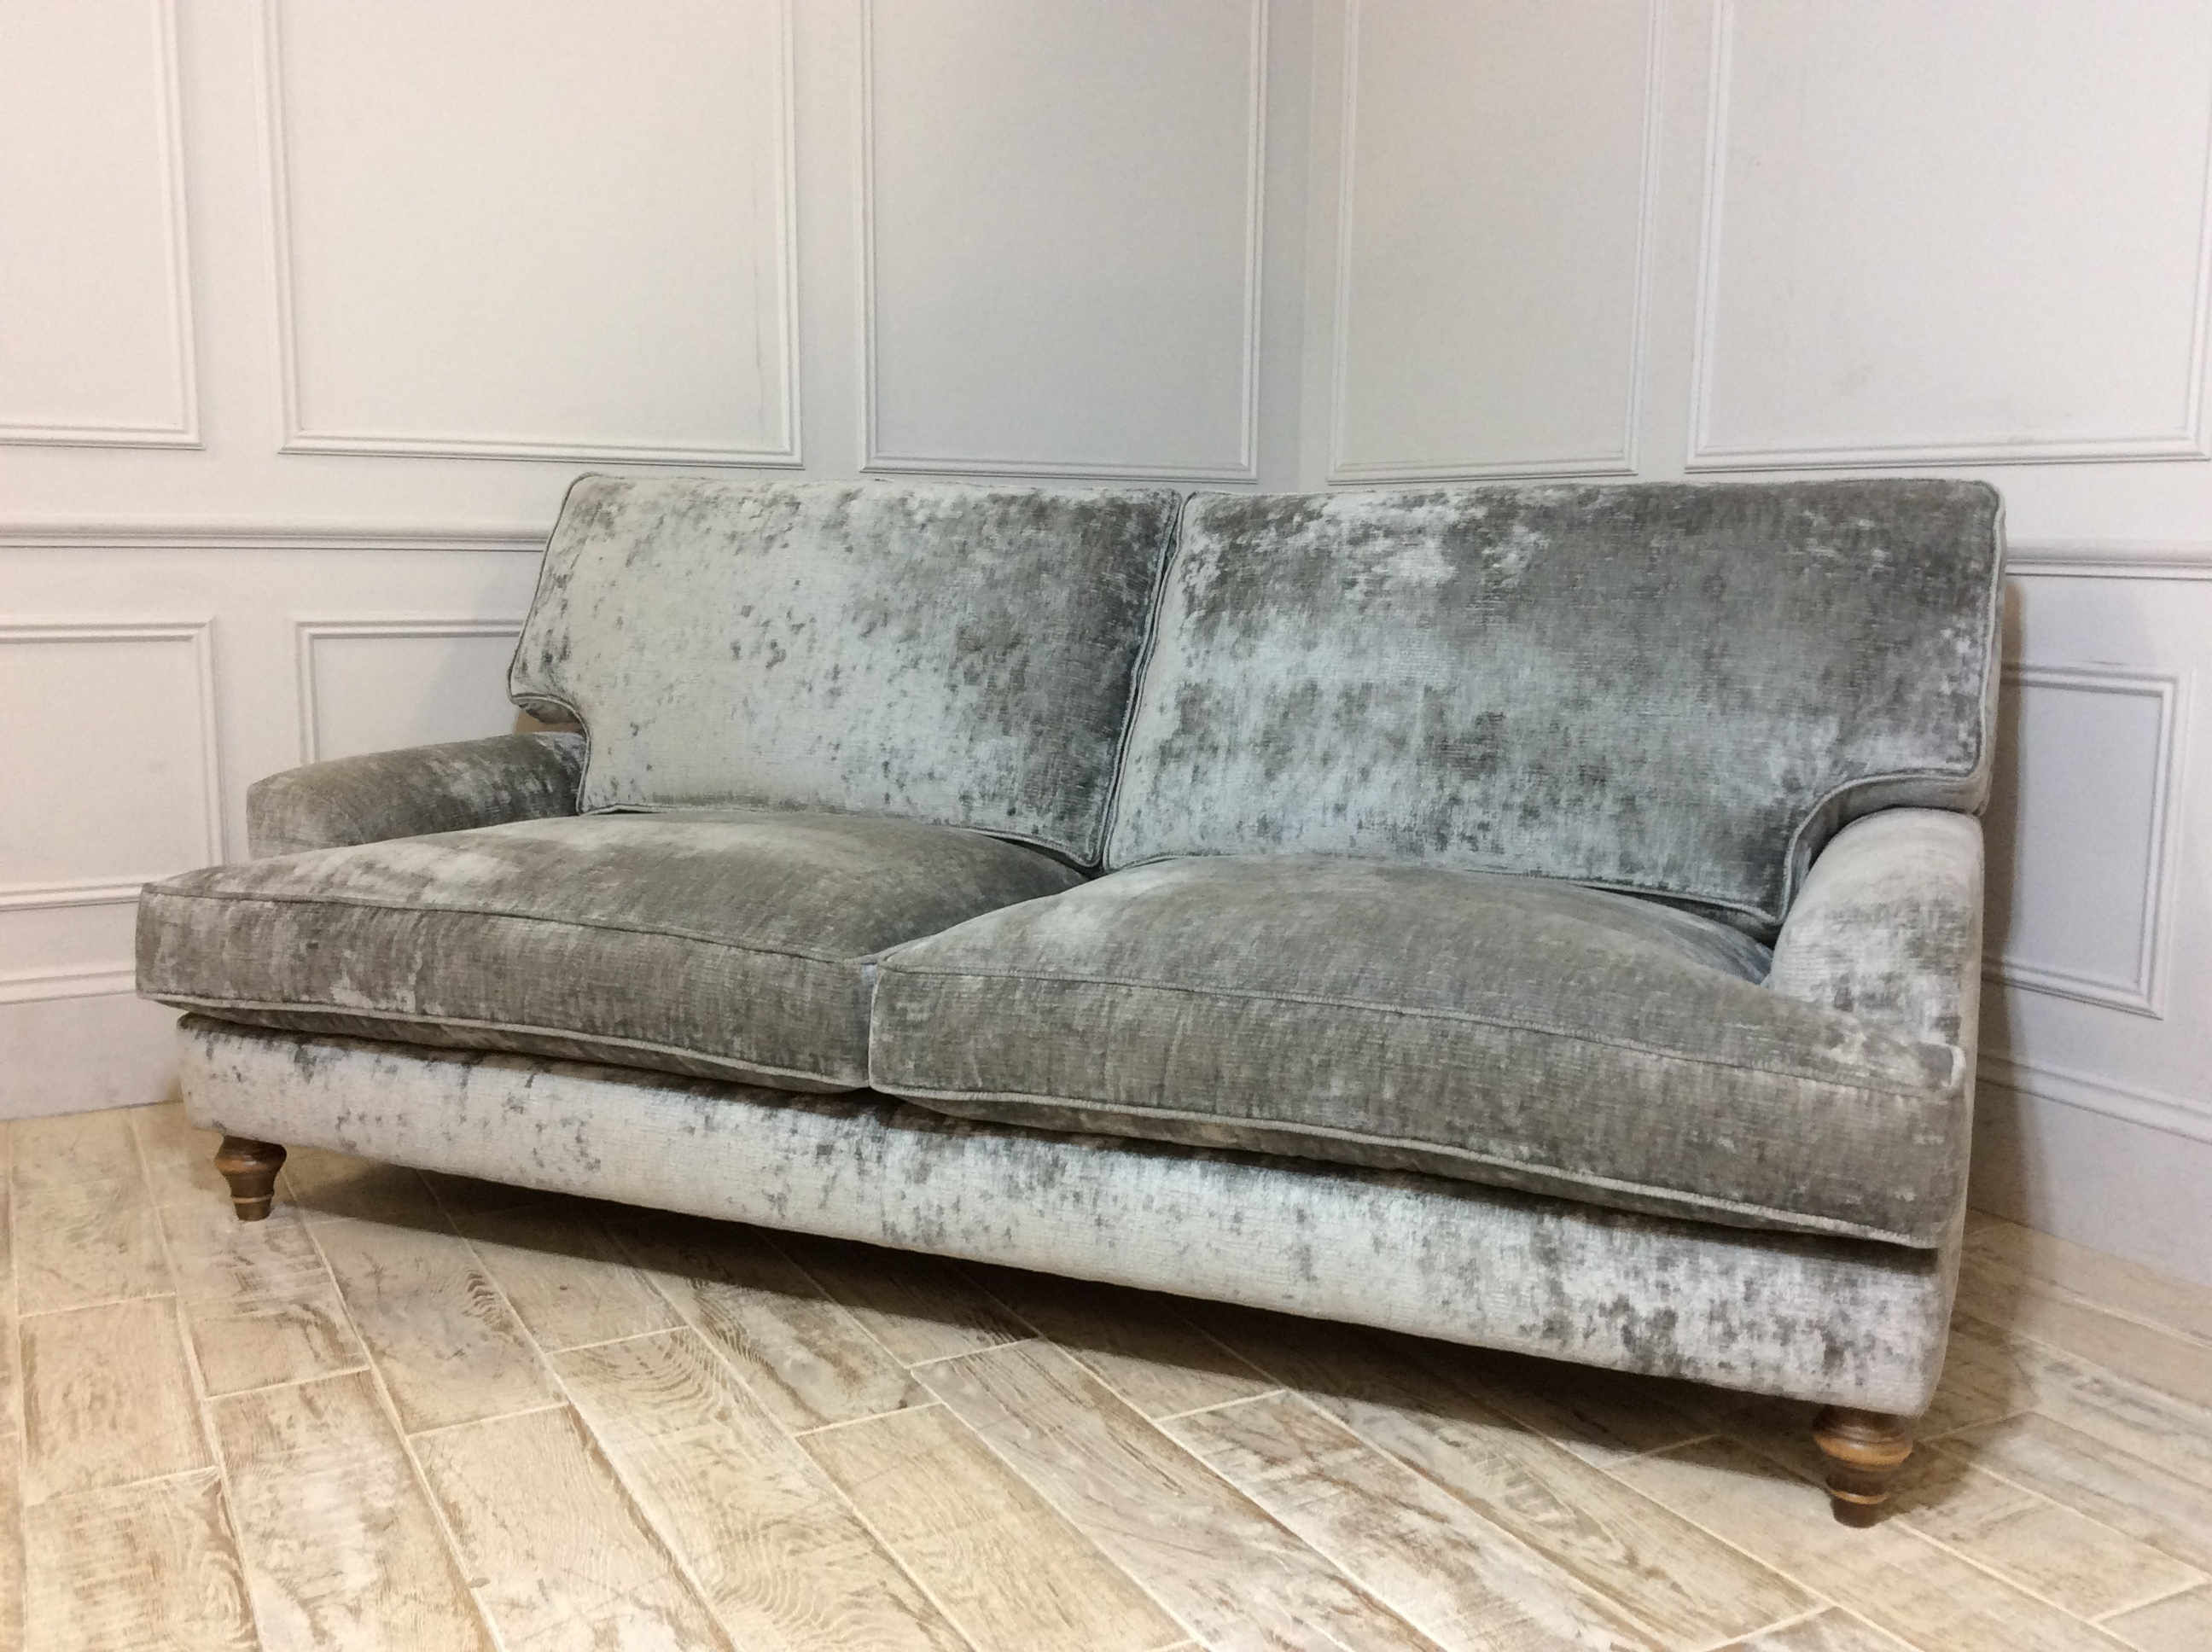 Whinfell Large Fabric Sofa in Traviata French Grey